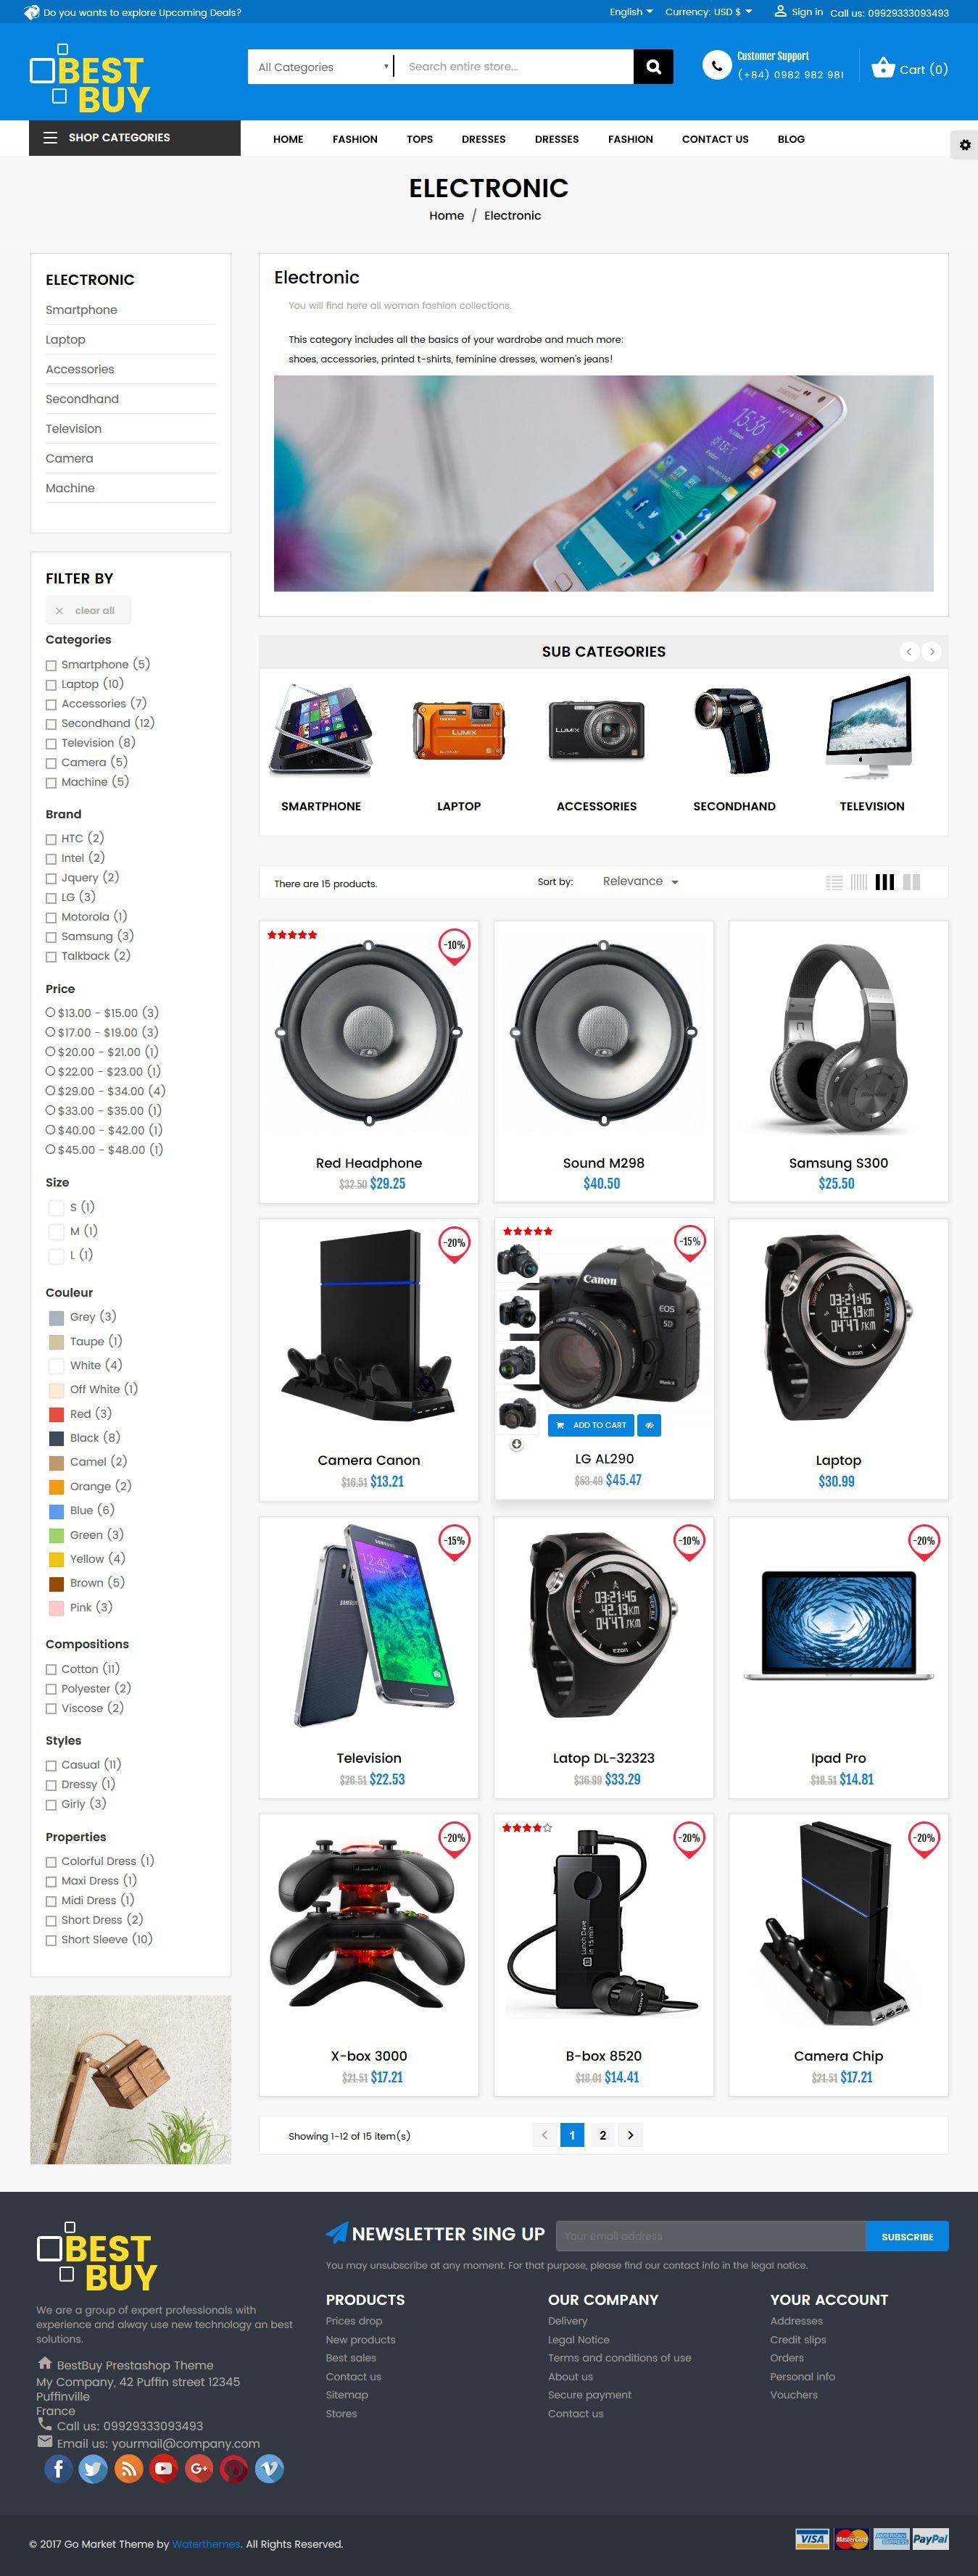 Best Buy PrestaShop Theme Screenshot 4